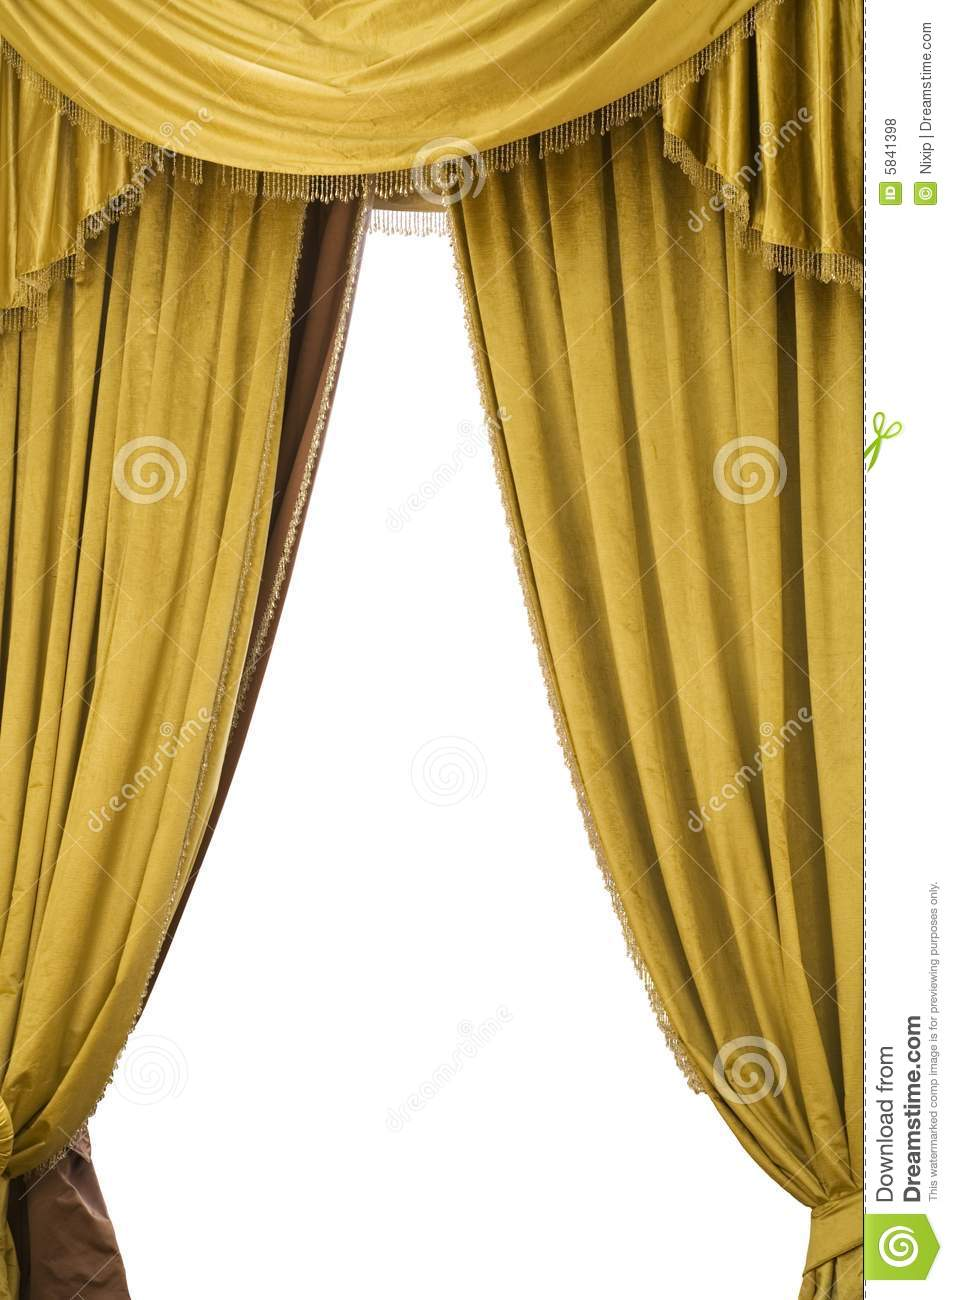 Gold Velvet Curtains Stock Photo Image Of Comedy Auditorium